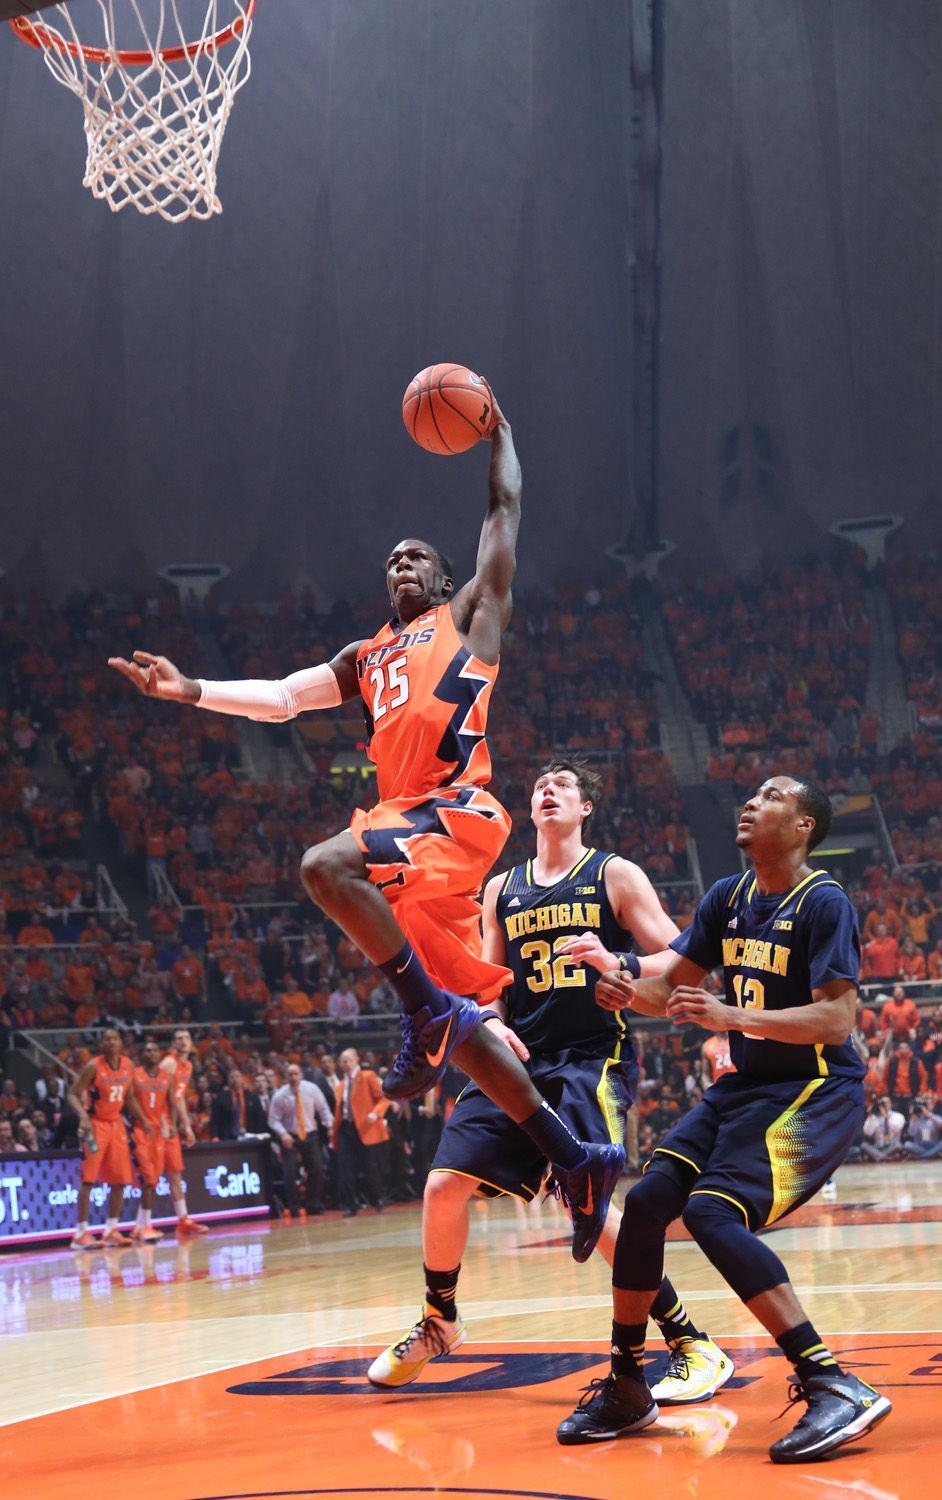 Illinois' Kendrick Nunn (25) rises while attempting to finish a fast-break with a dunk during the game against Michigan at State Farm Center, on Feb. 12, 2014. The Illini won 64-52.